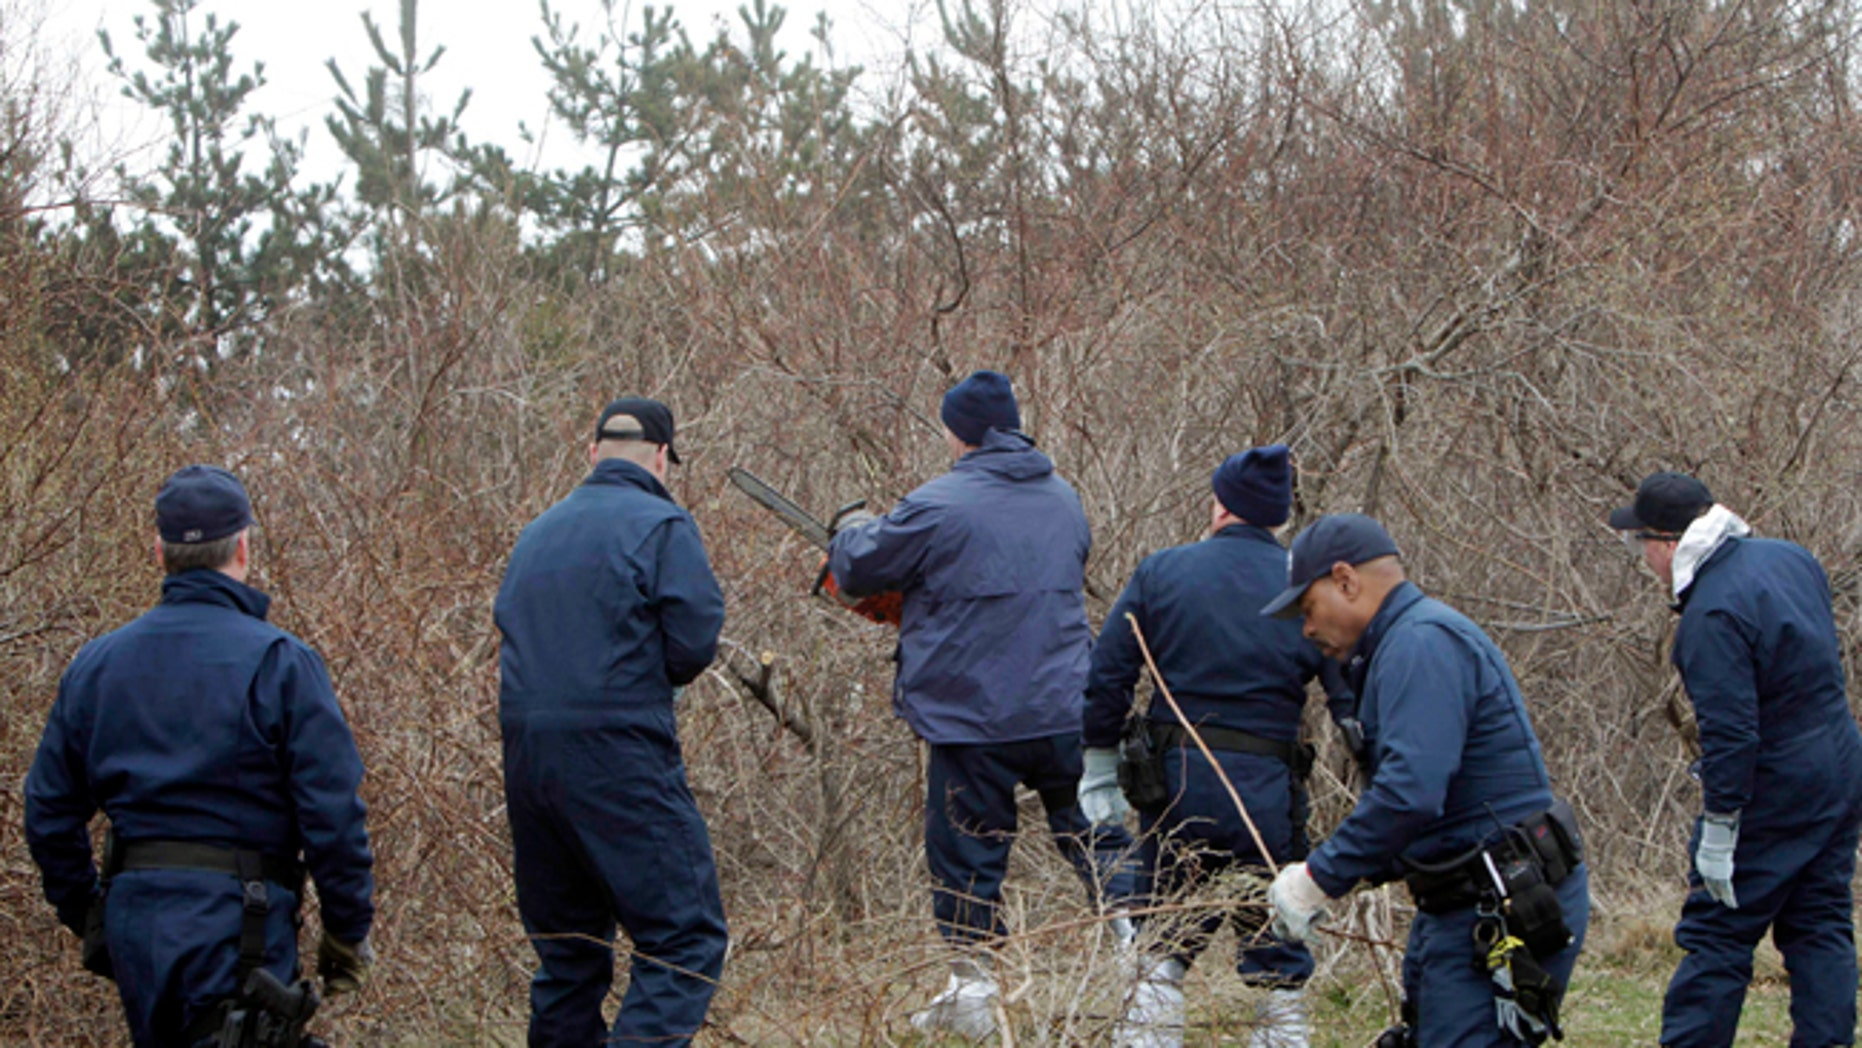 Emergency personnel search through the brush for human remains near Jones Beach in Wantagh, N.Y. in this April 11, 2011 file photo.